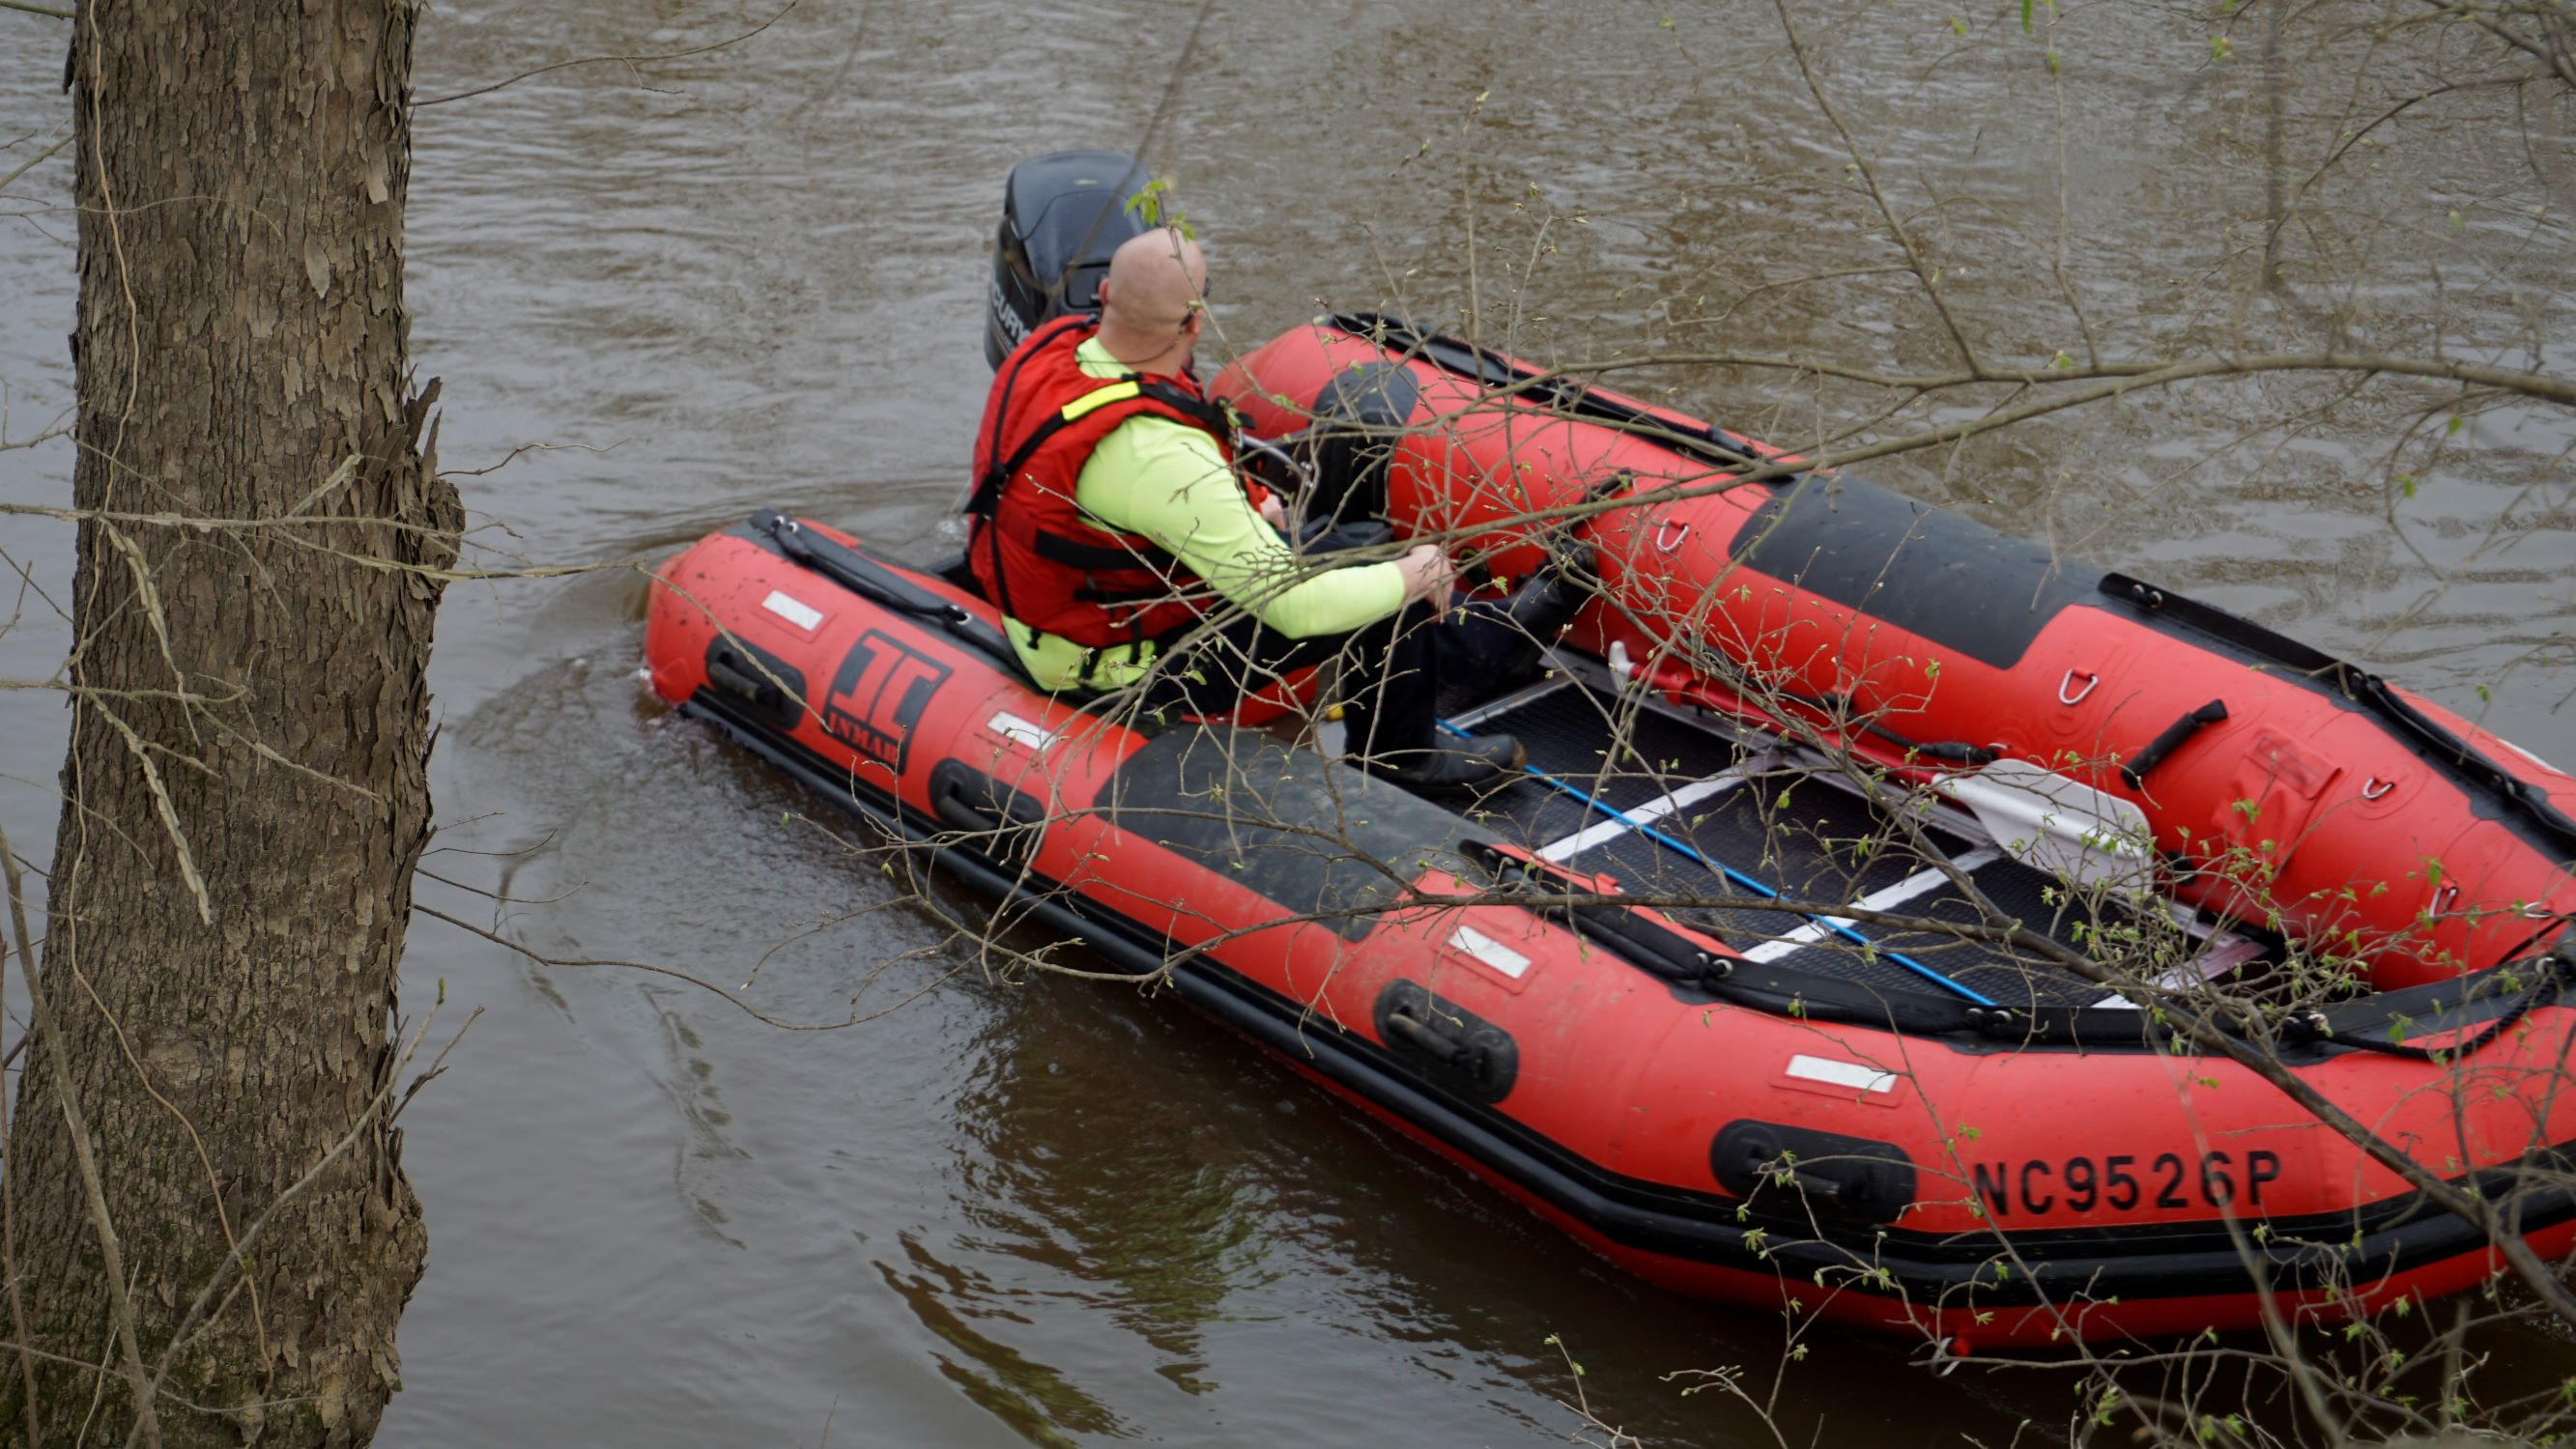 Body Of Missing Child Found In Neuse River, Search Continues For Father